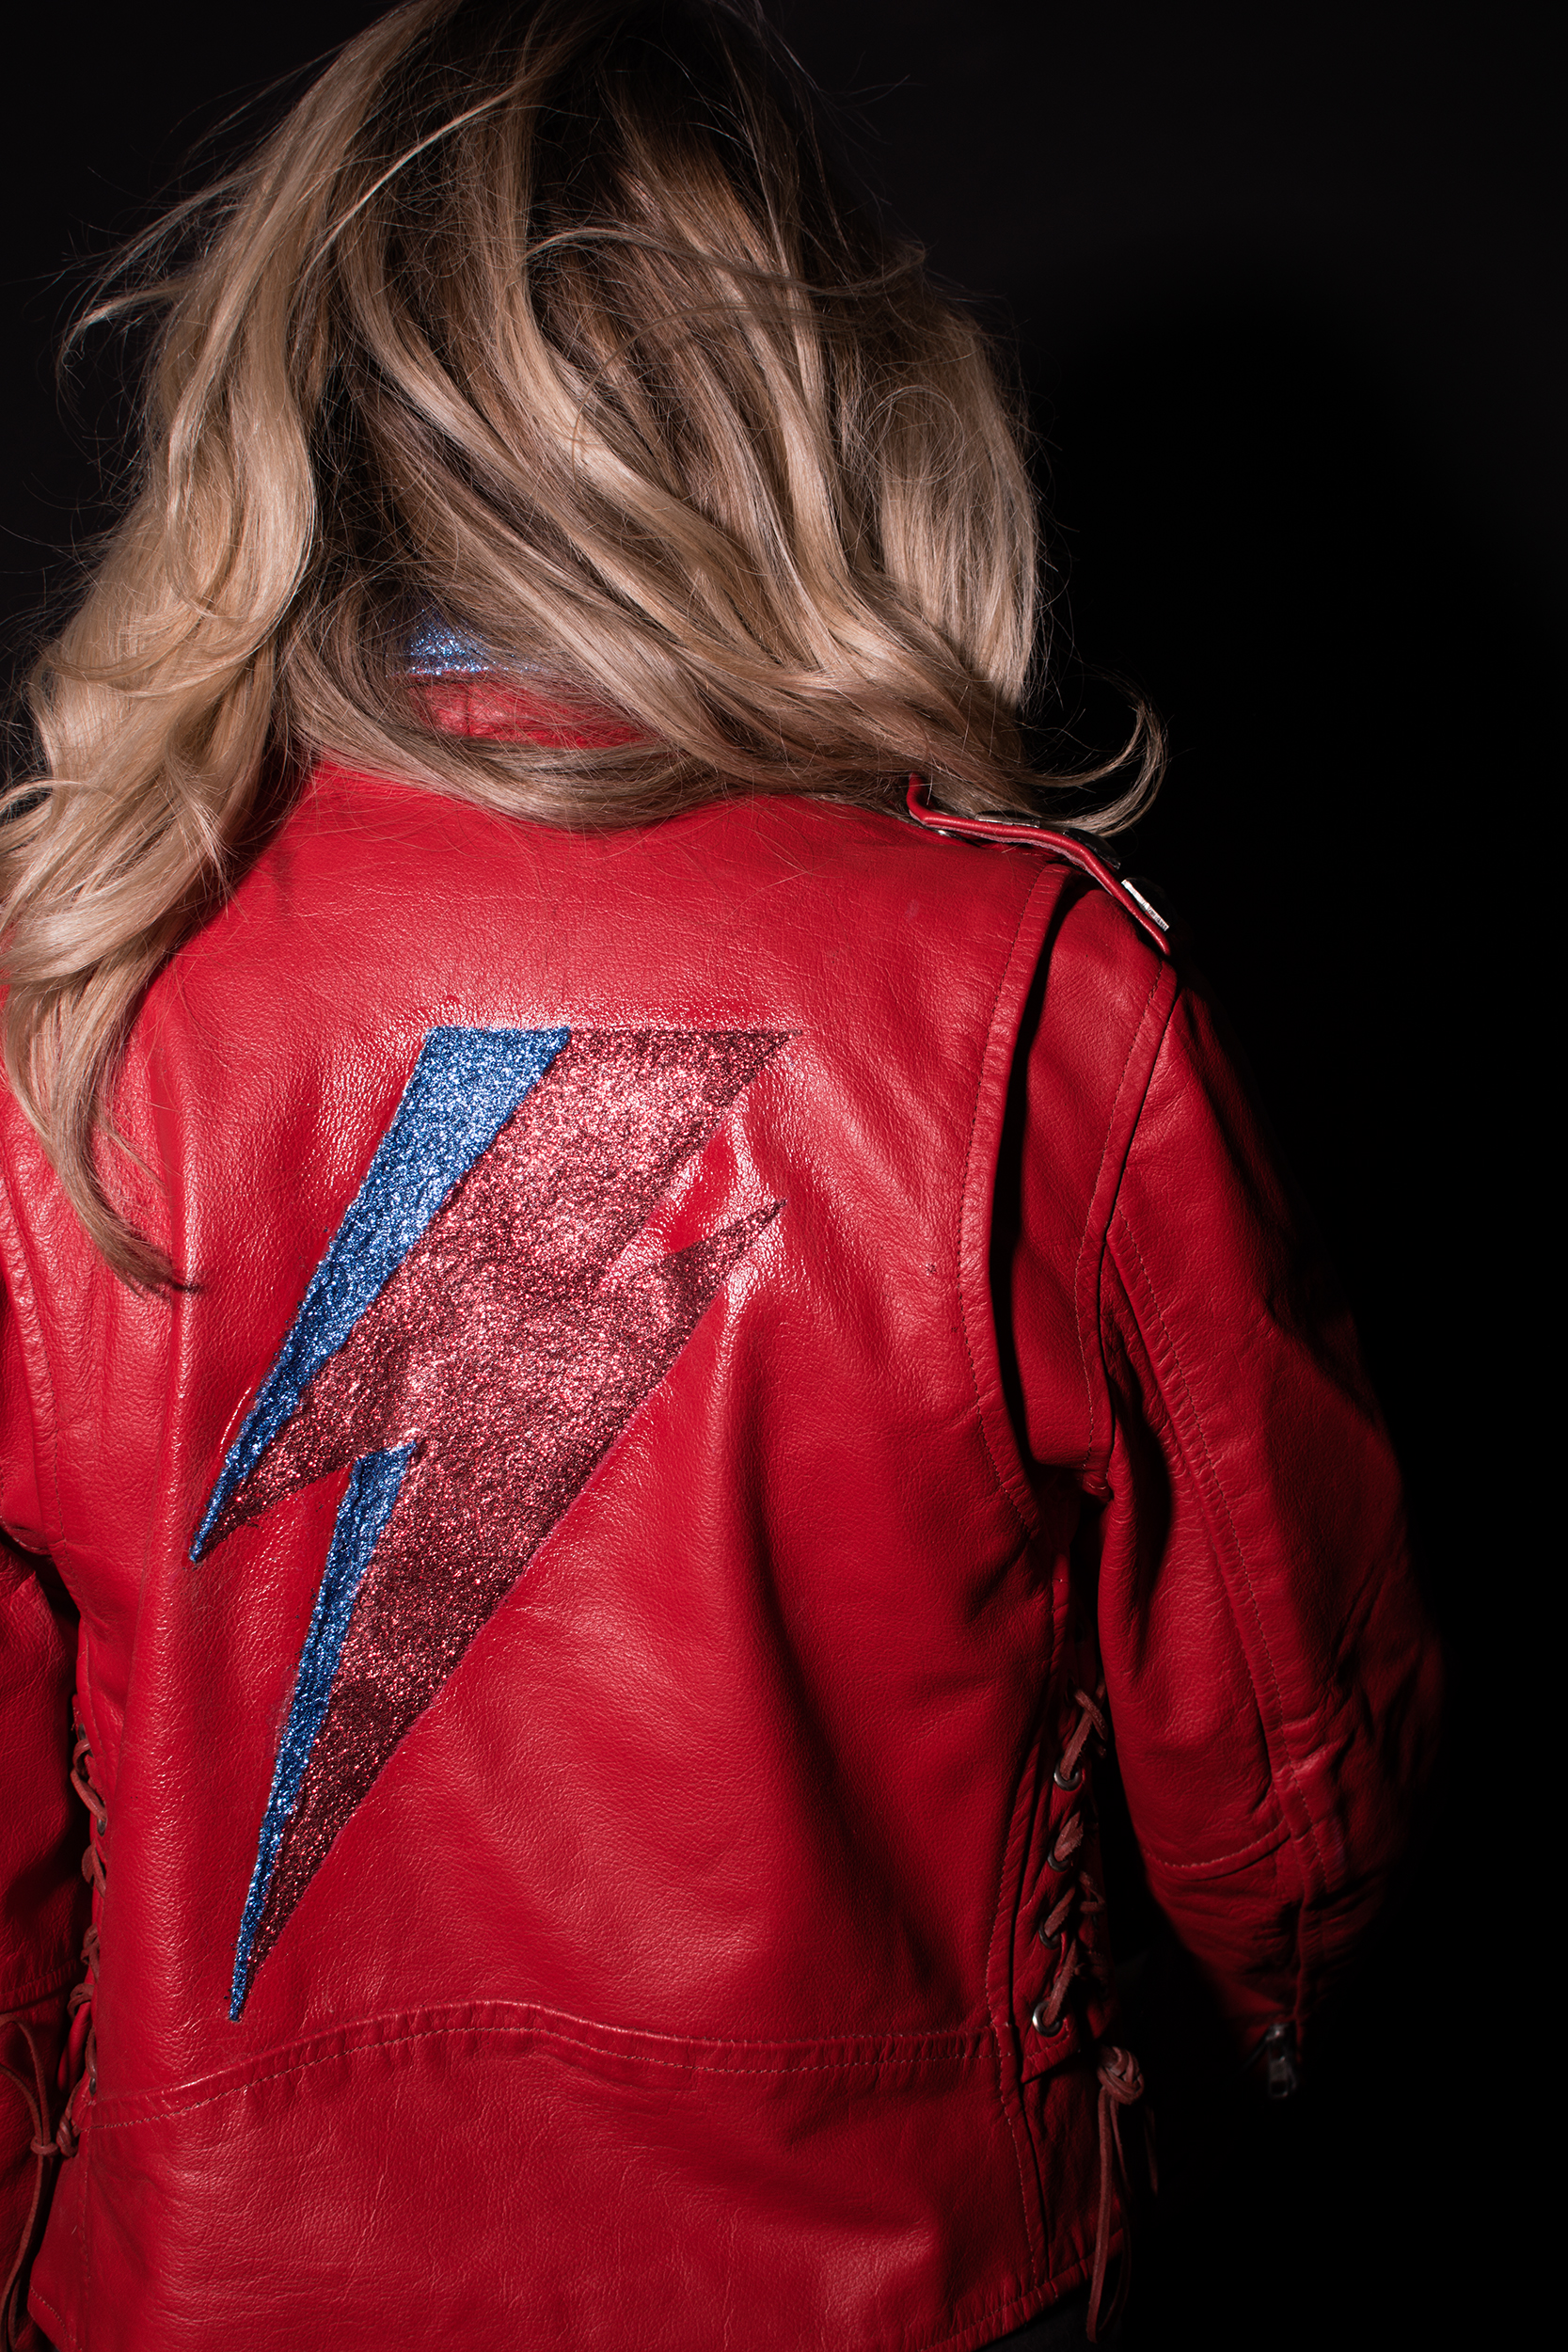 David Bowie Vintage Jacket